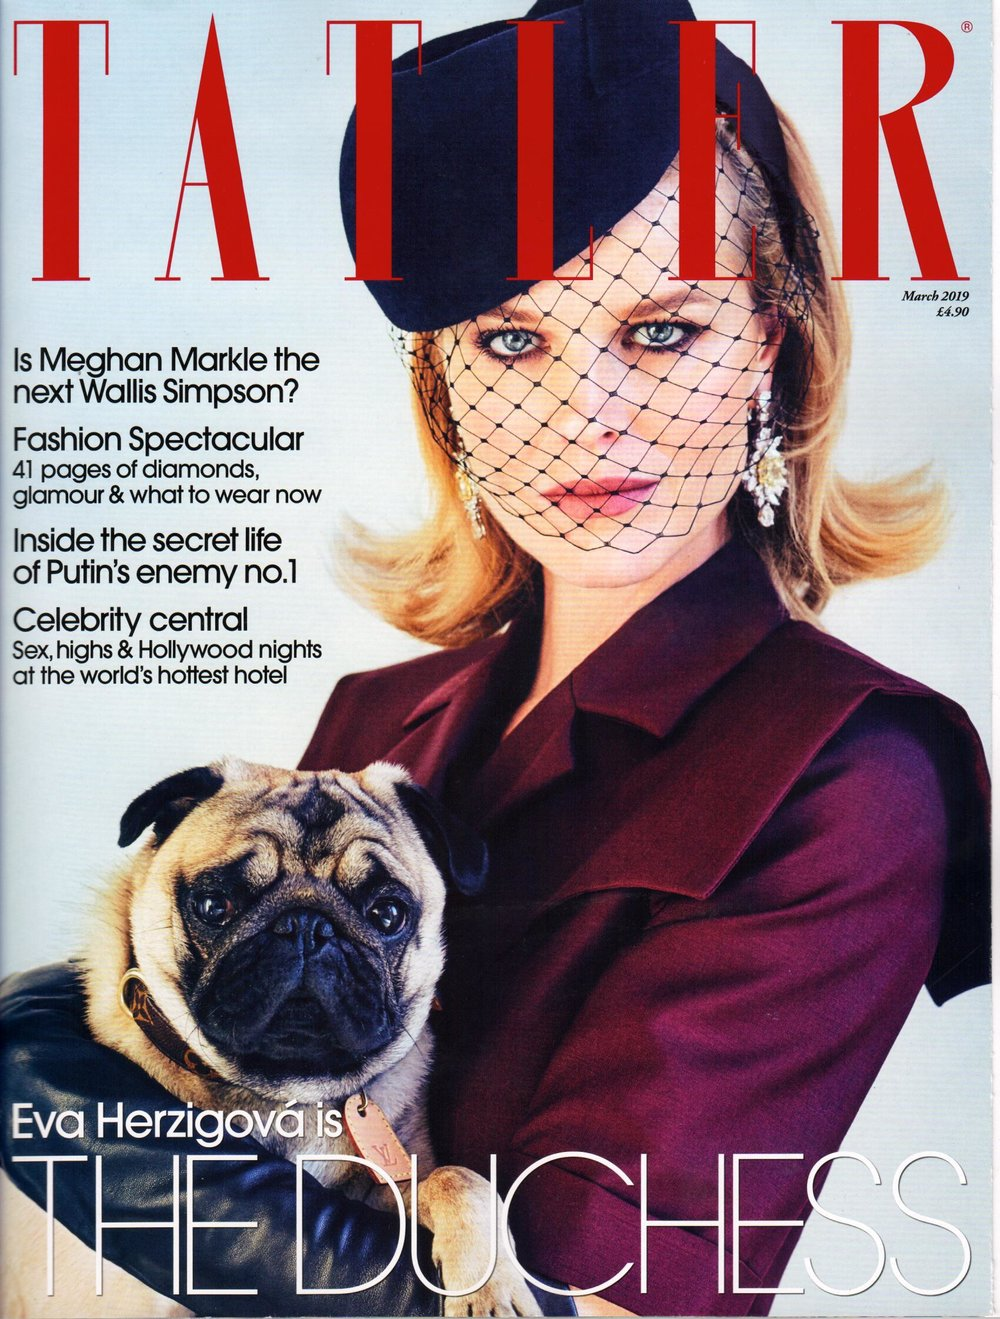 Tatler March 2019 cover.jpg